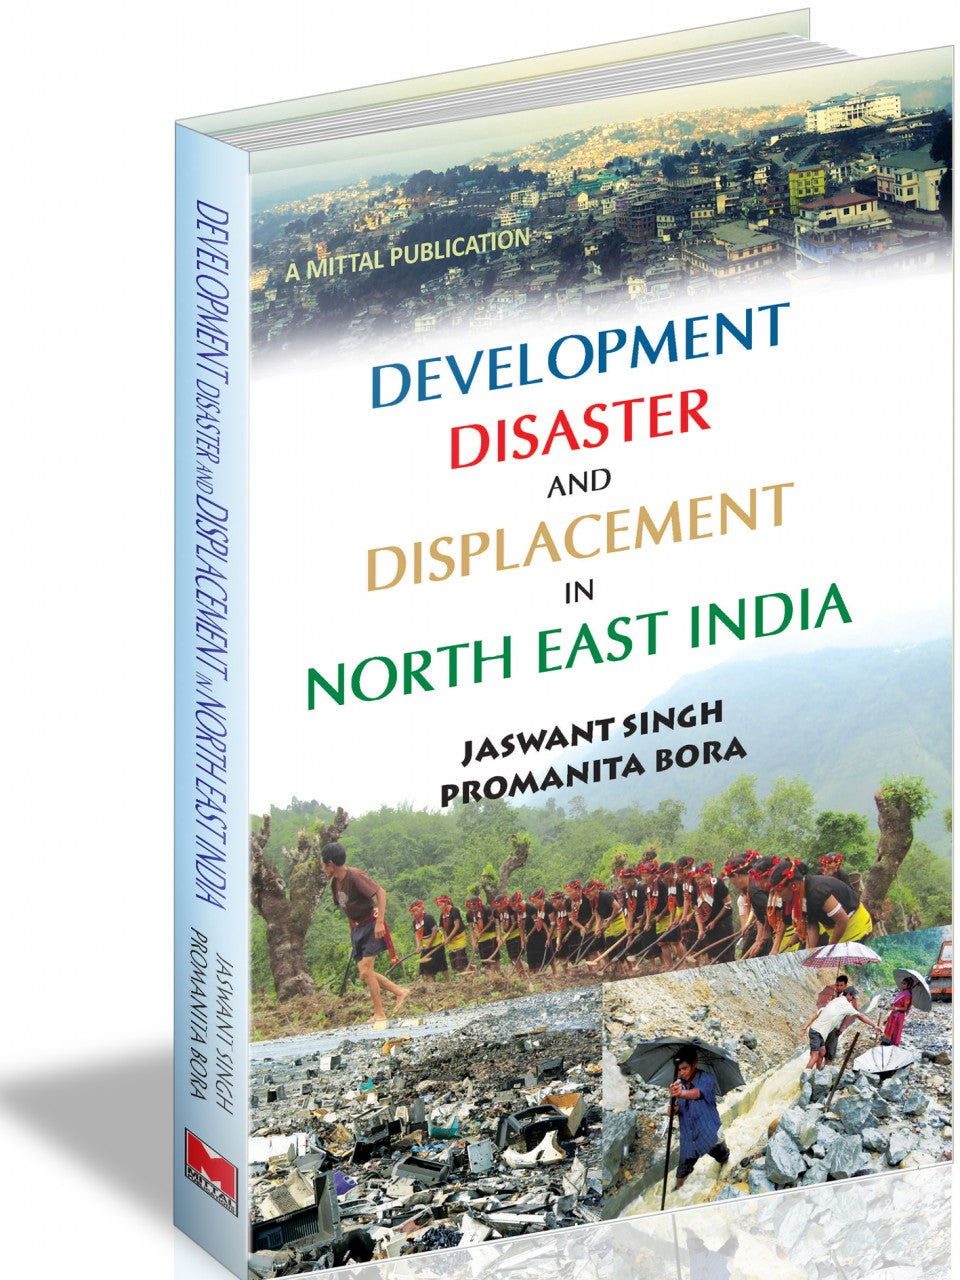 Development Disaster and Displacement in North East India